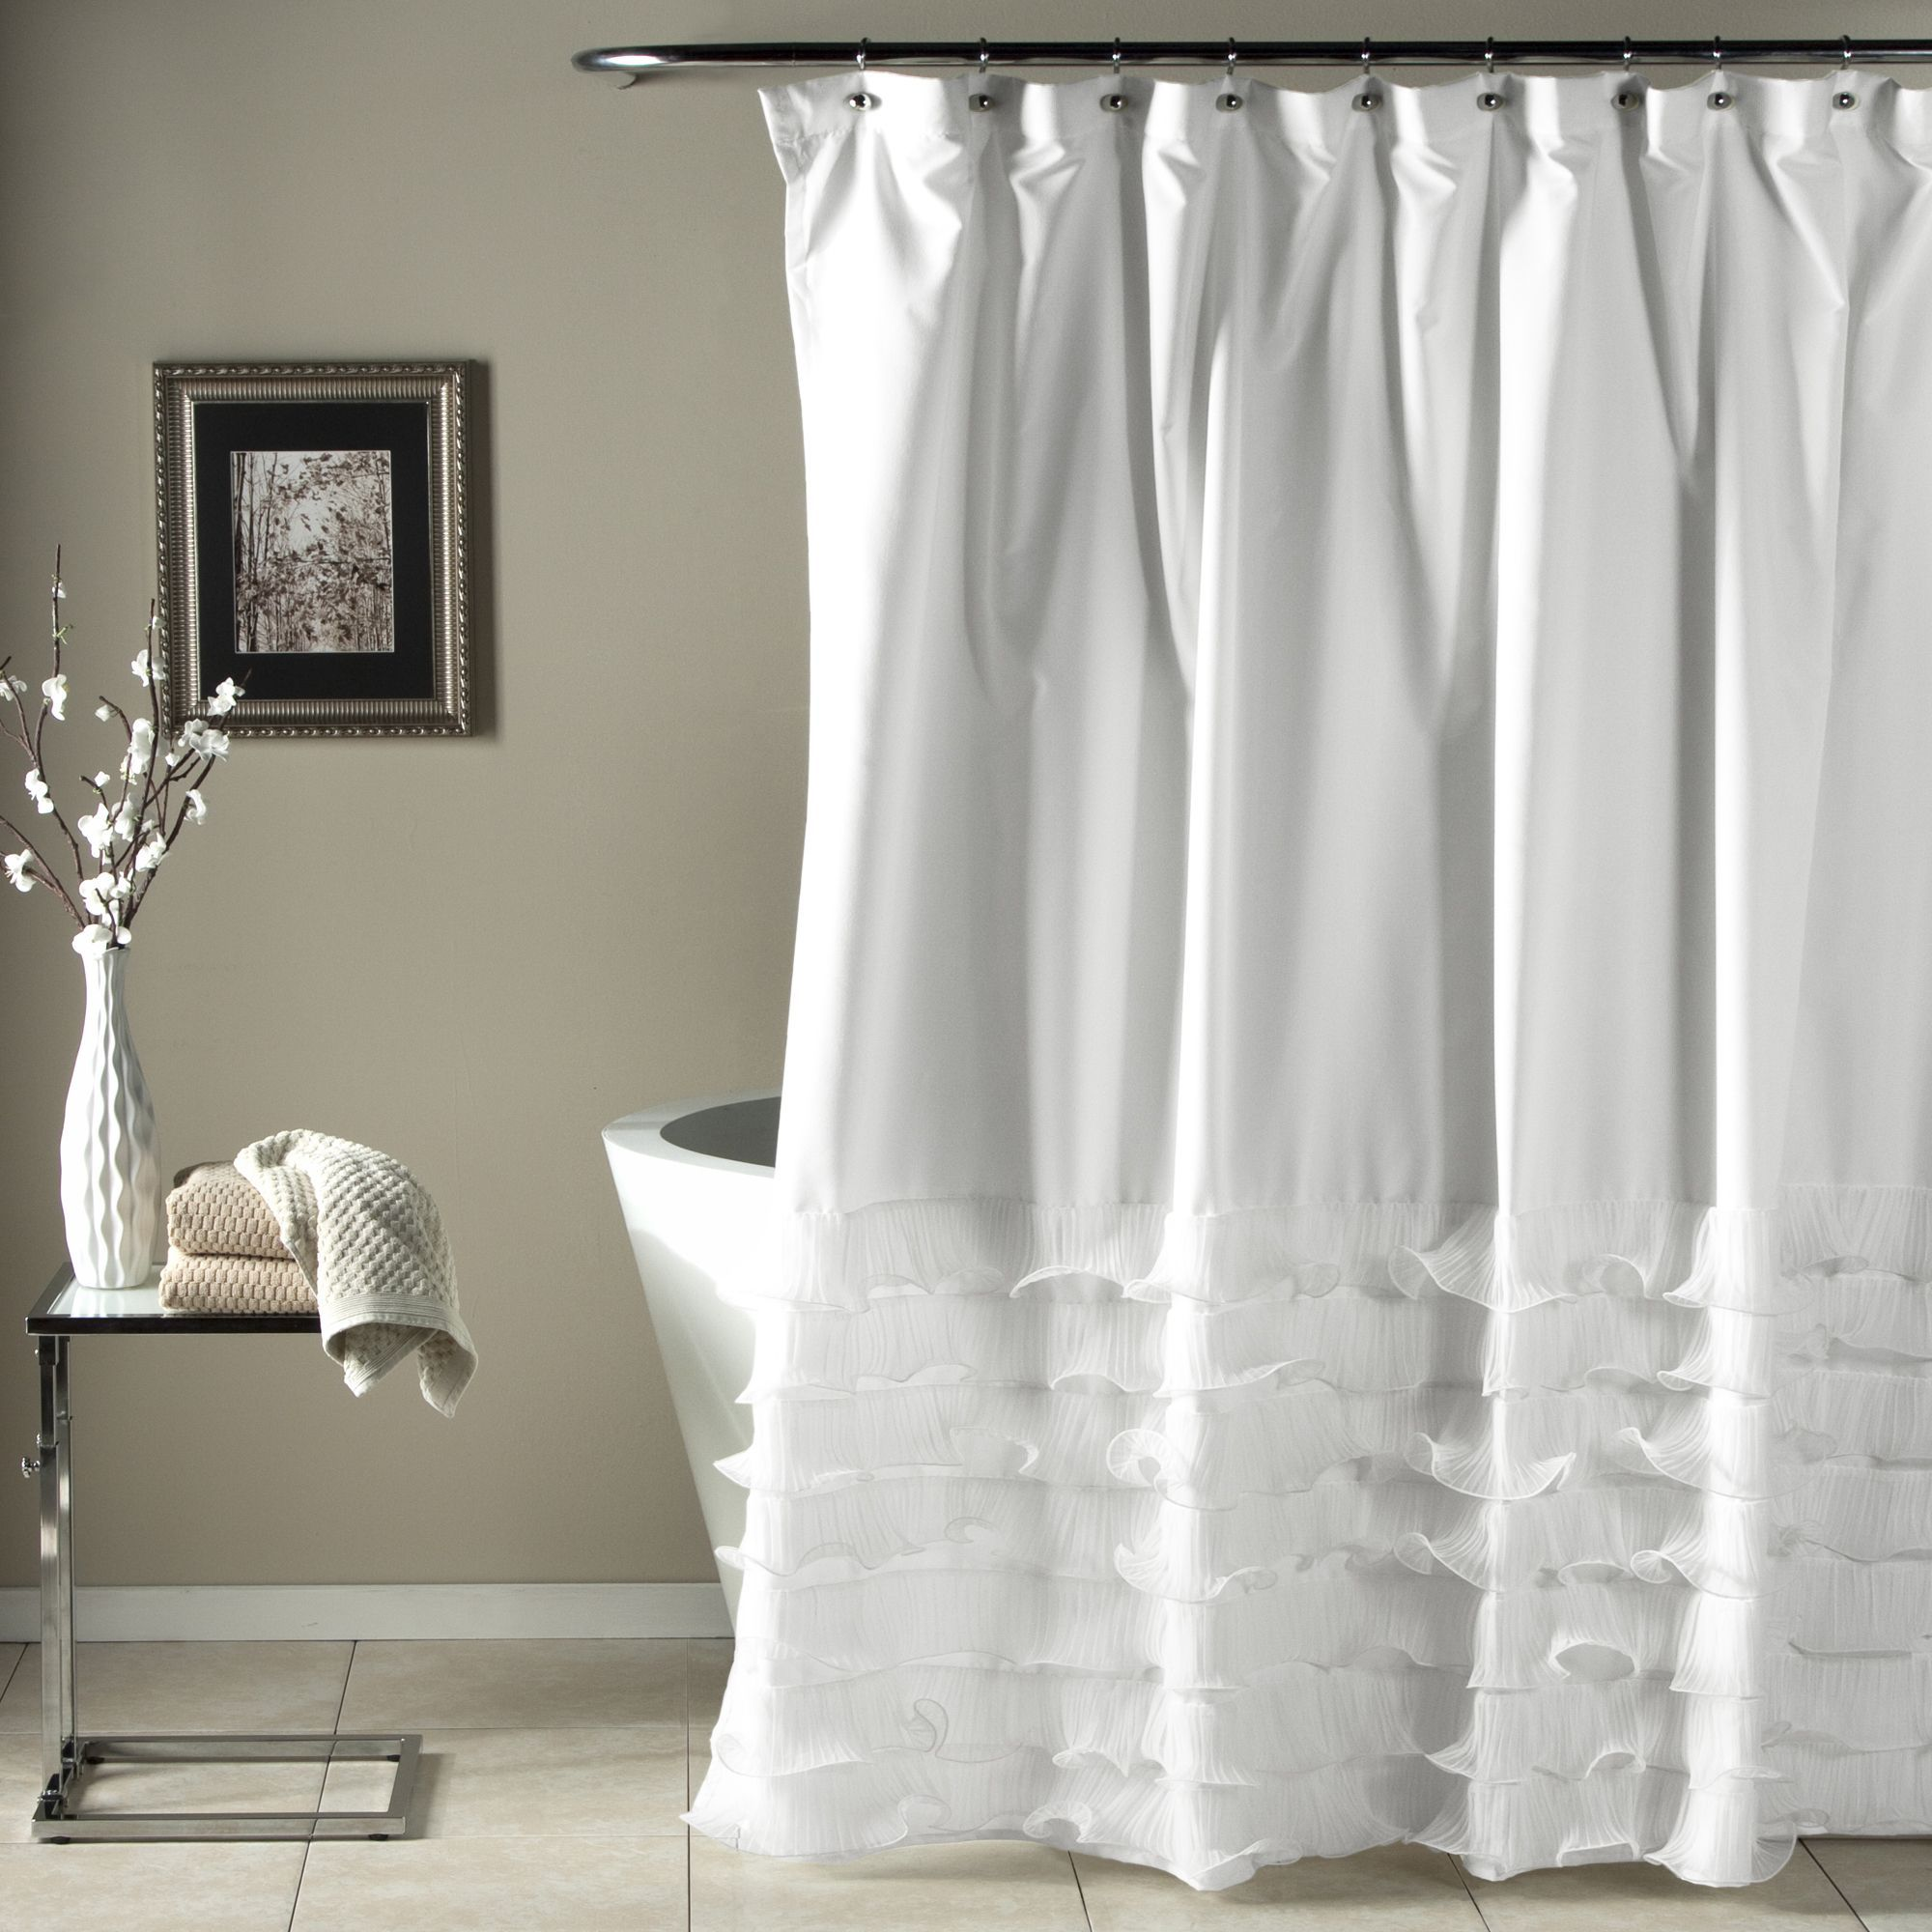 The avery shower curtain features ripples of diaphanous tiers over a